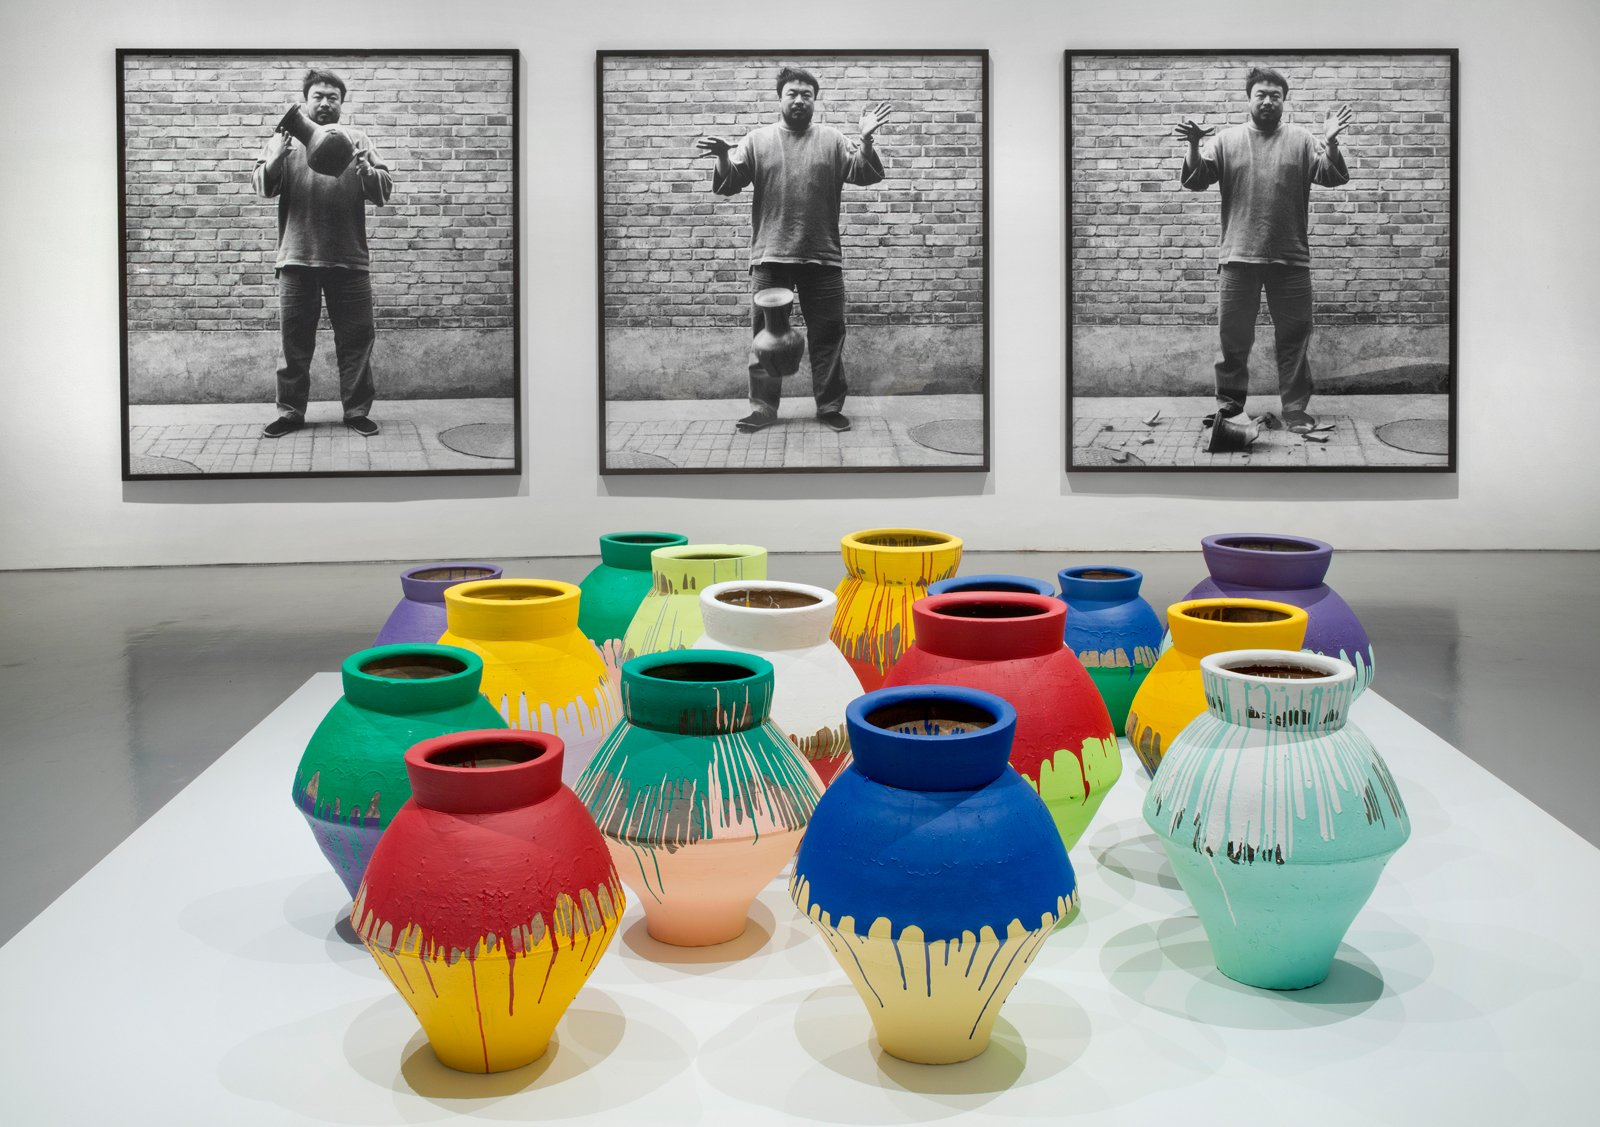 Installation view of Ai Weiwei: According to What? at the Hirshhorn Museum and Sculpture Garden, Washington D.C., 2012. Photo by Cathy Carver.  Photo 4 of 4 in Ai Weiwei's Washington Moment